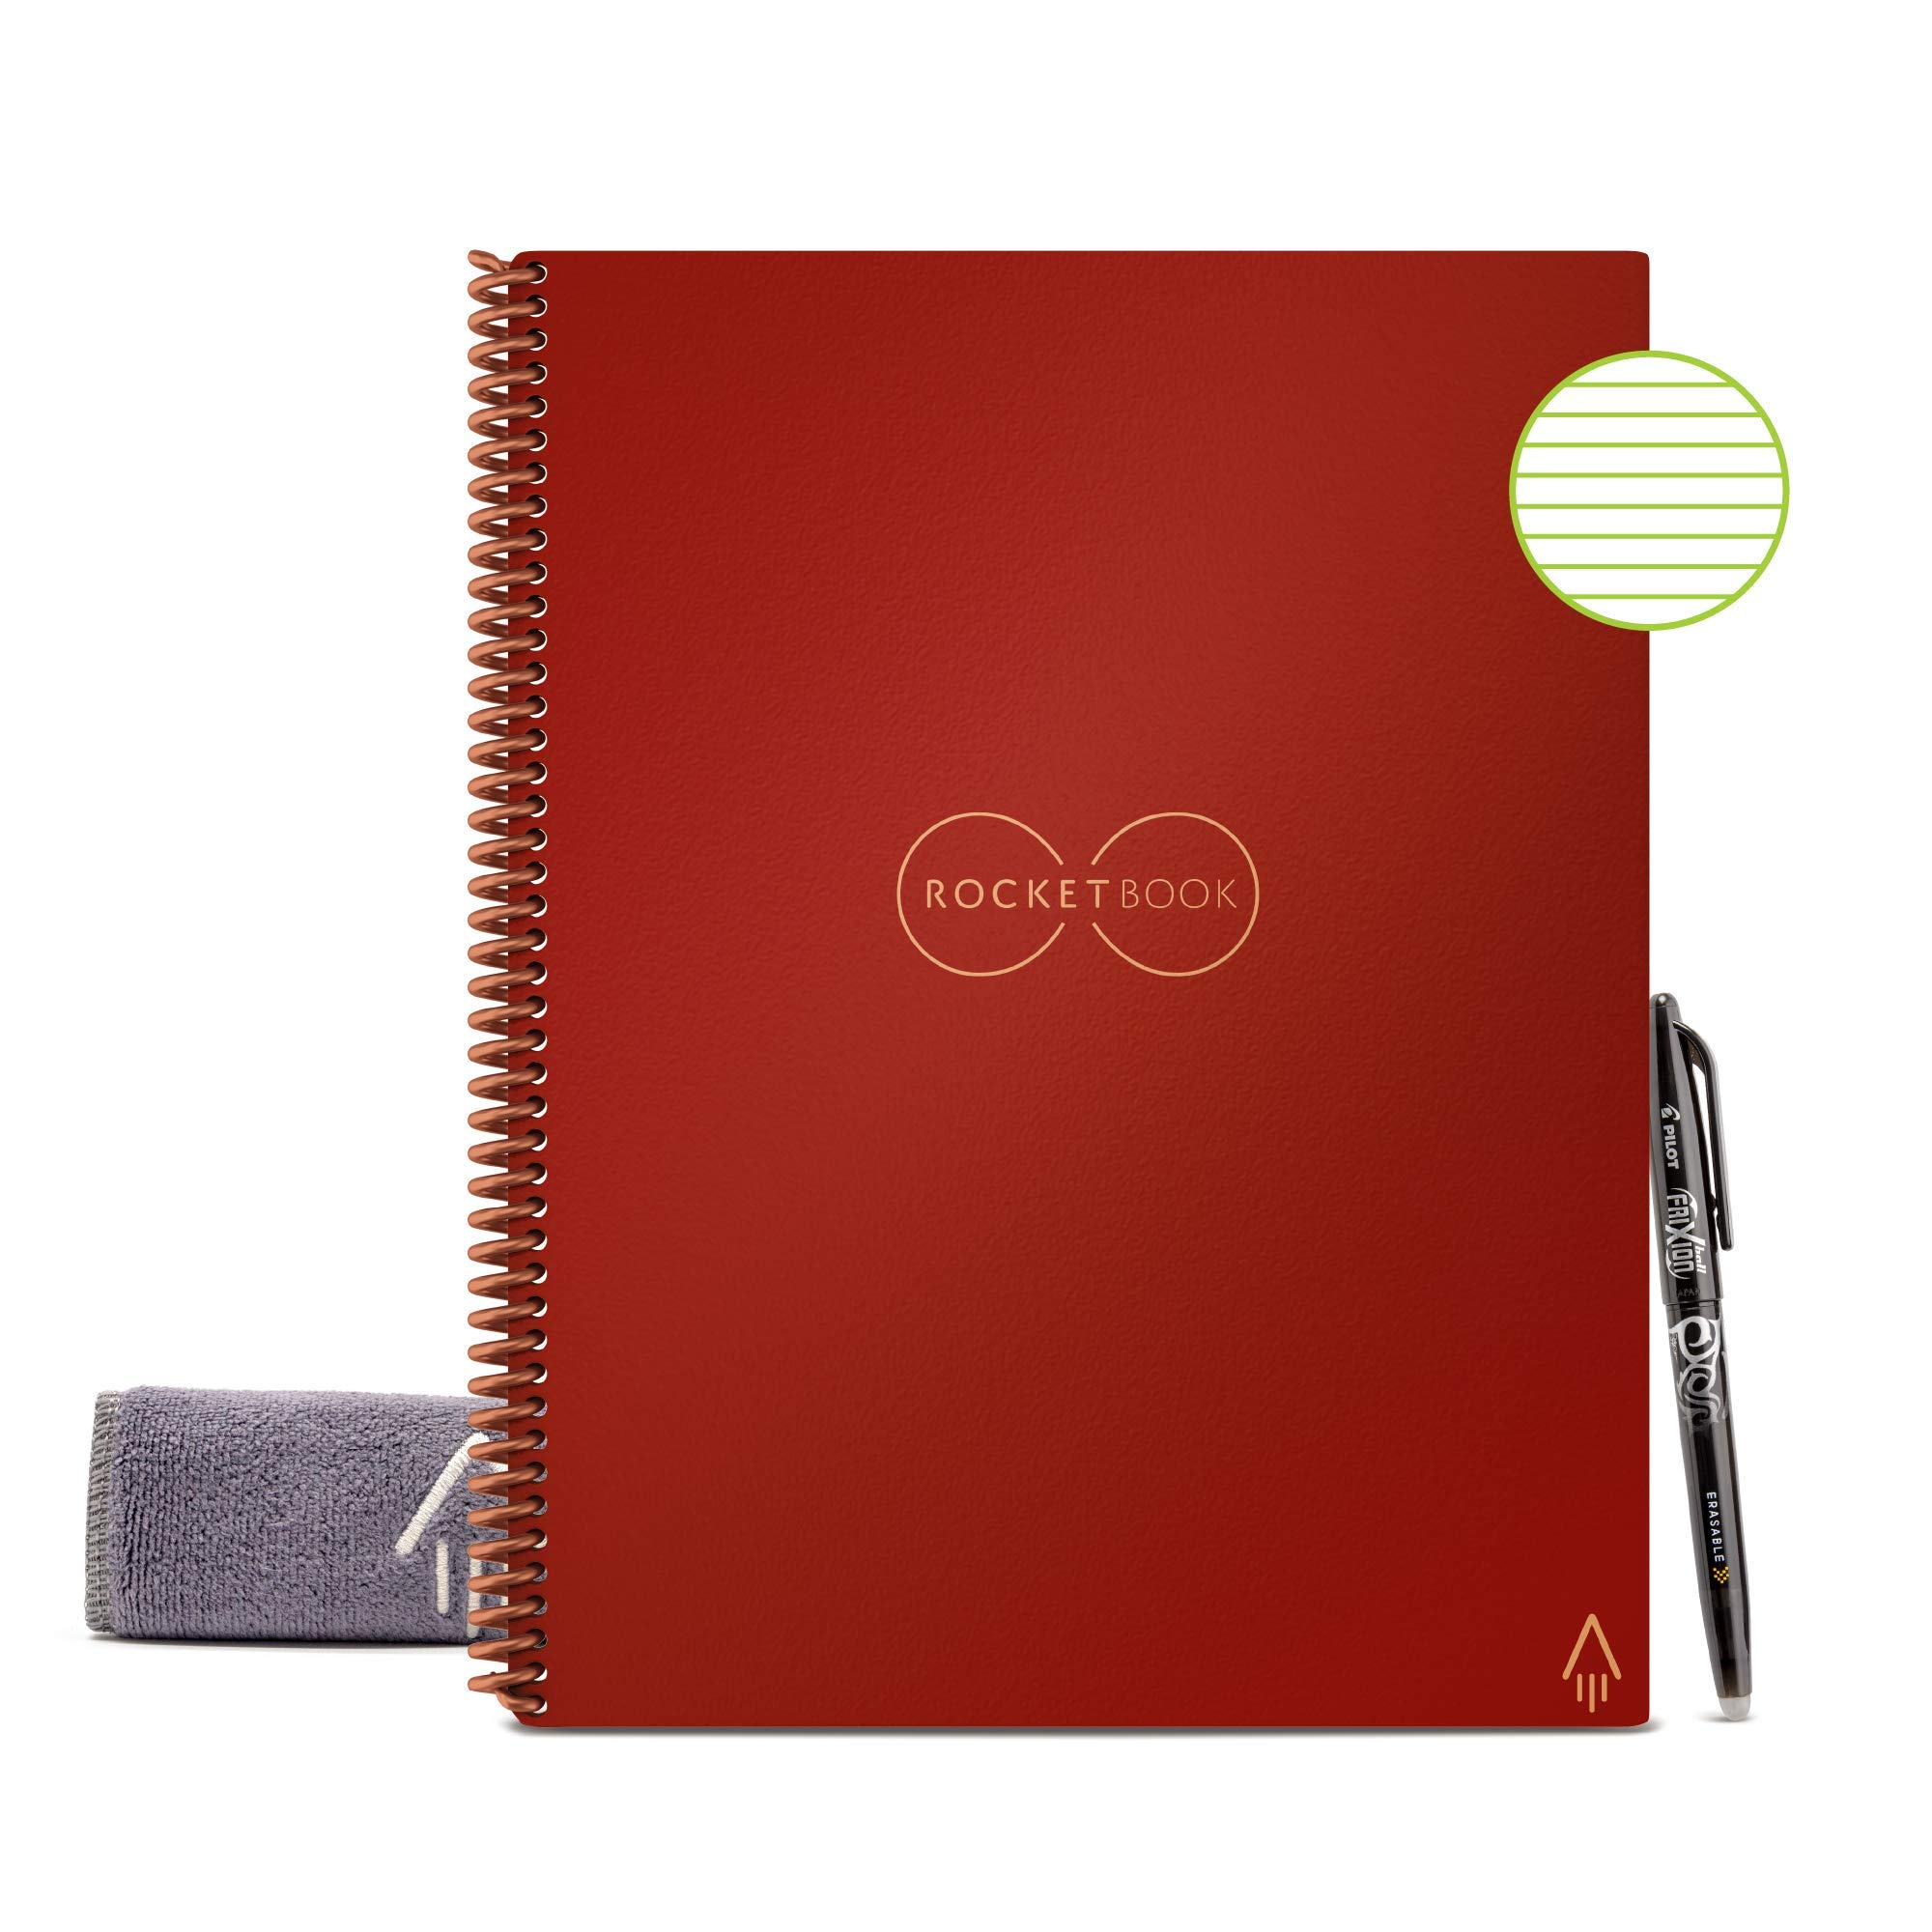 """Rocketbook Smart Reusable Notebook - Lined Eco-Friendly Notebook with 1 Pilot Frixion Pen & 1 Microfiber Cloth Included - Scarlet Sky Cover, Letter Size (8.5"""" x 11"""")"""